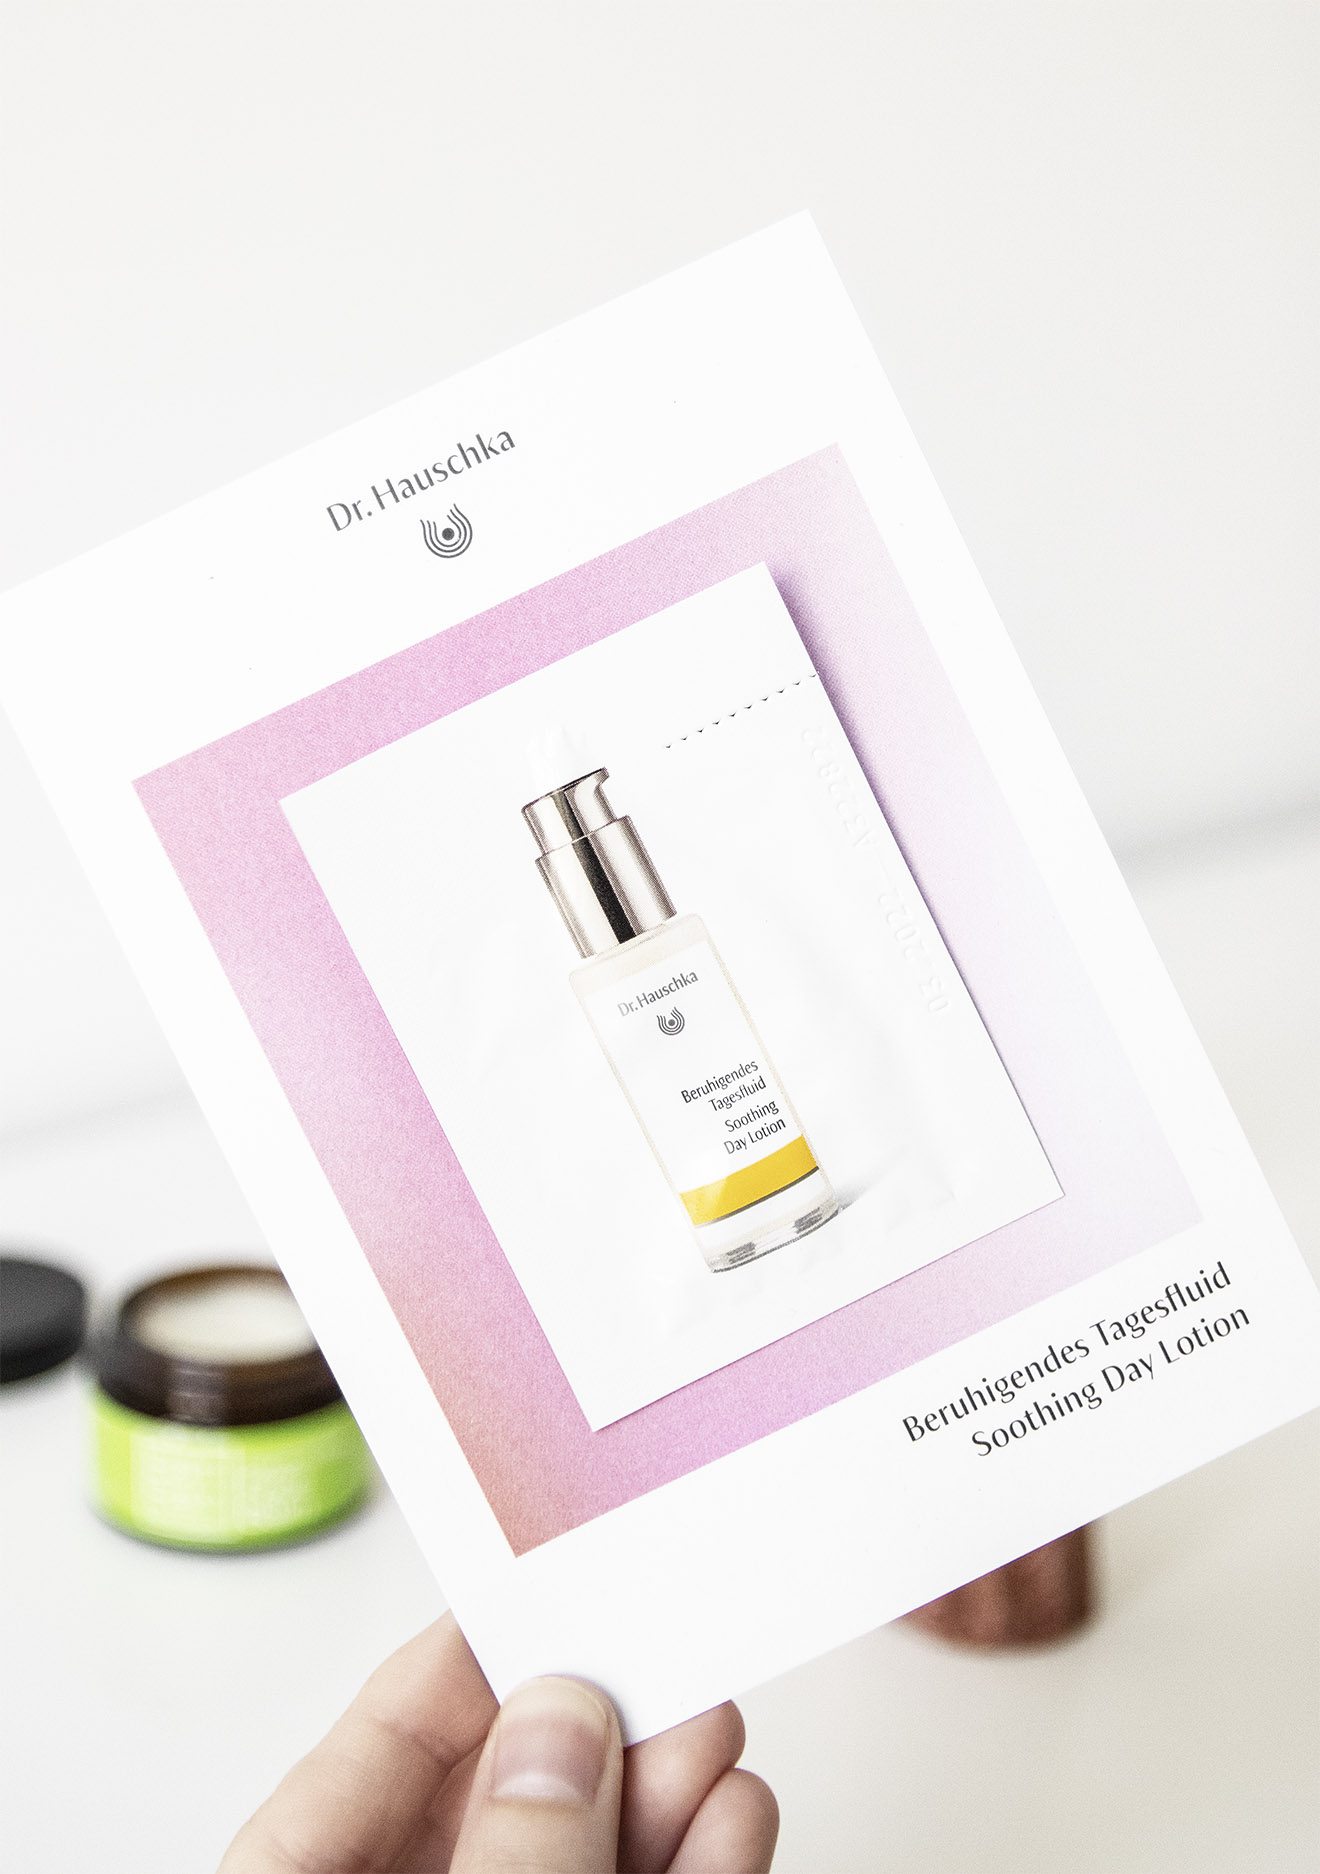 Dr Hauschka Soothing Day Lotion